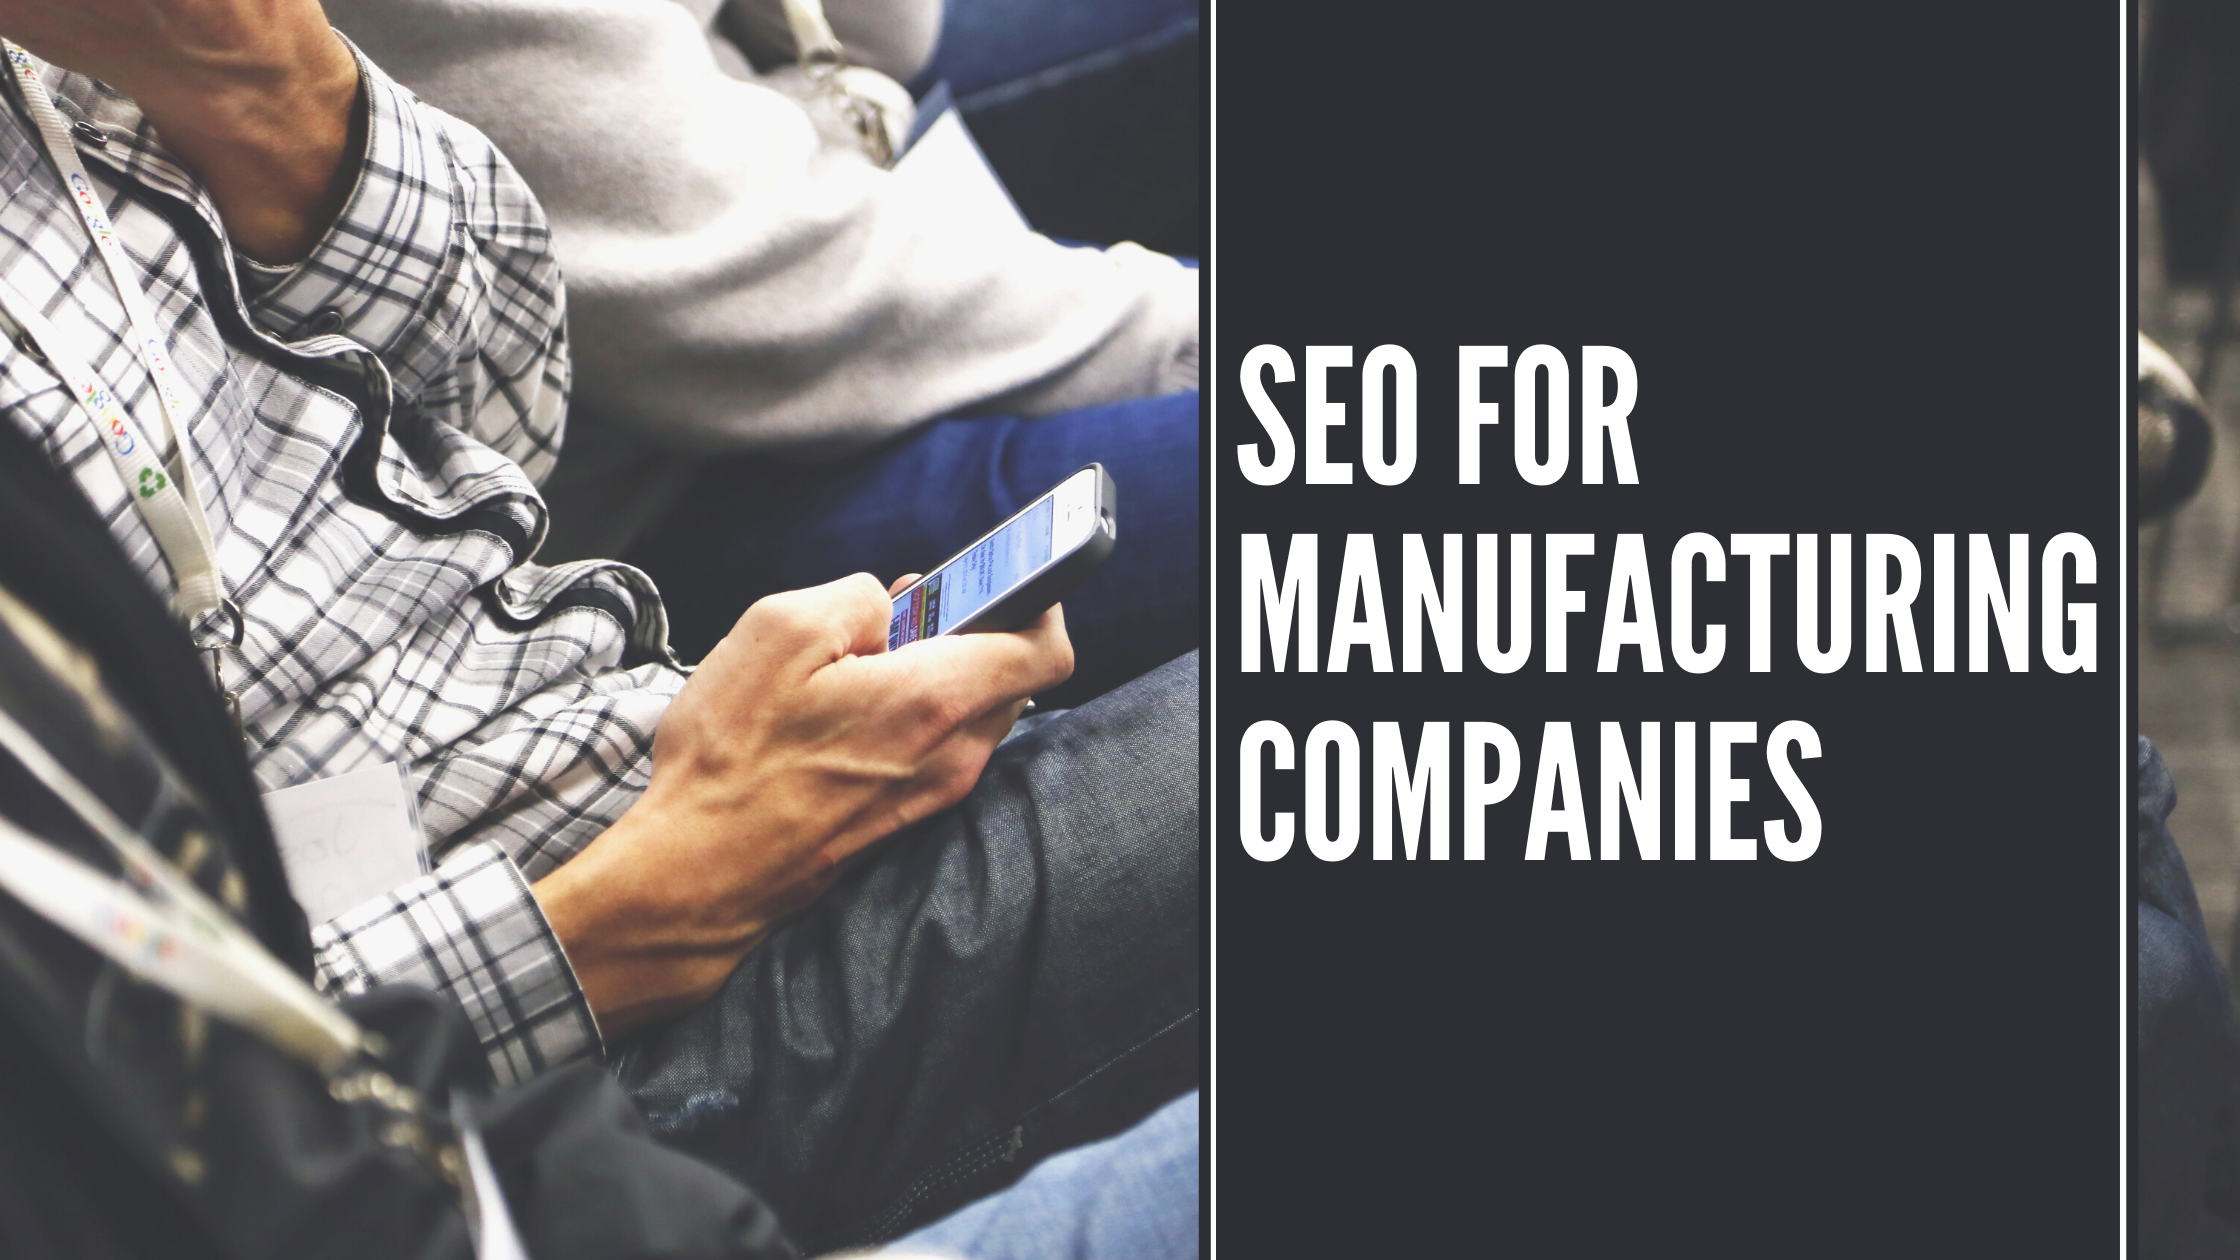 SEO for Manufacturing Companies is a Strategic Issue